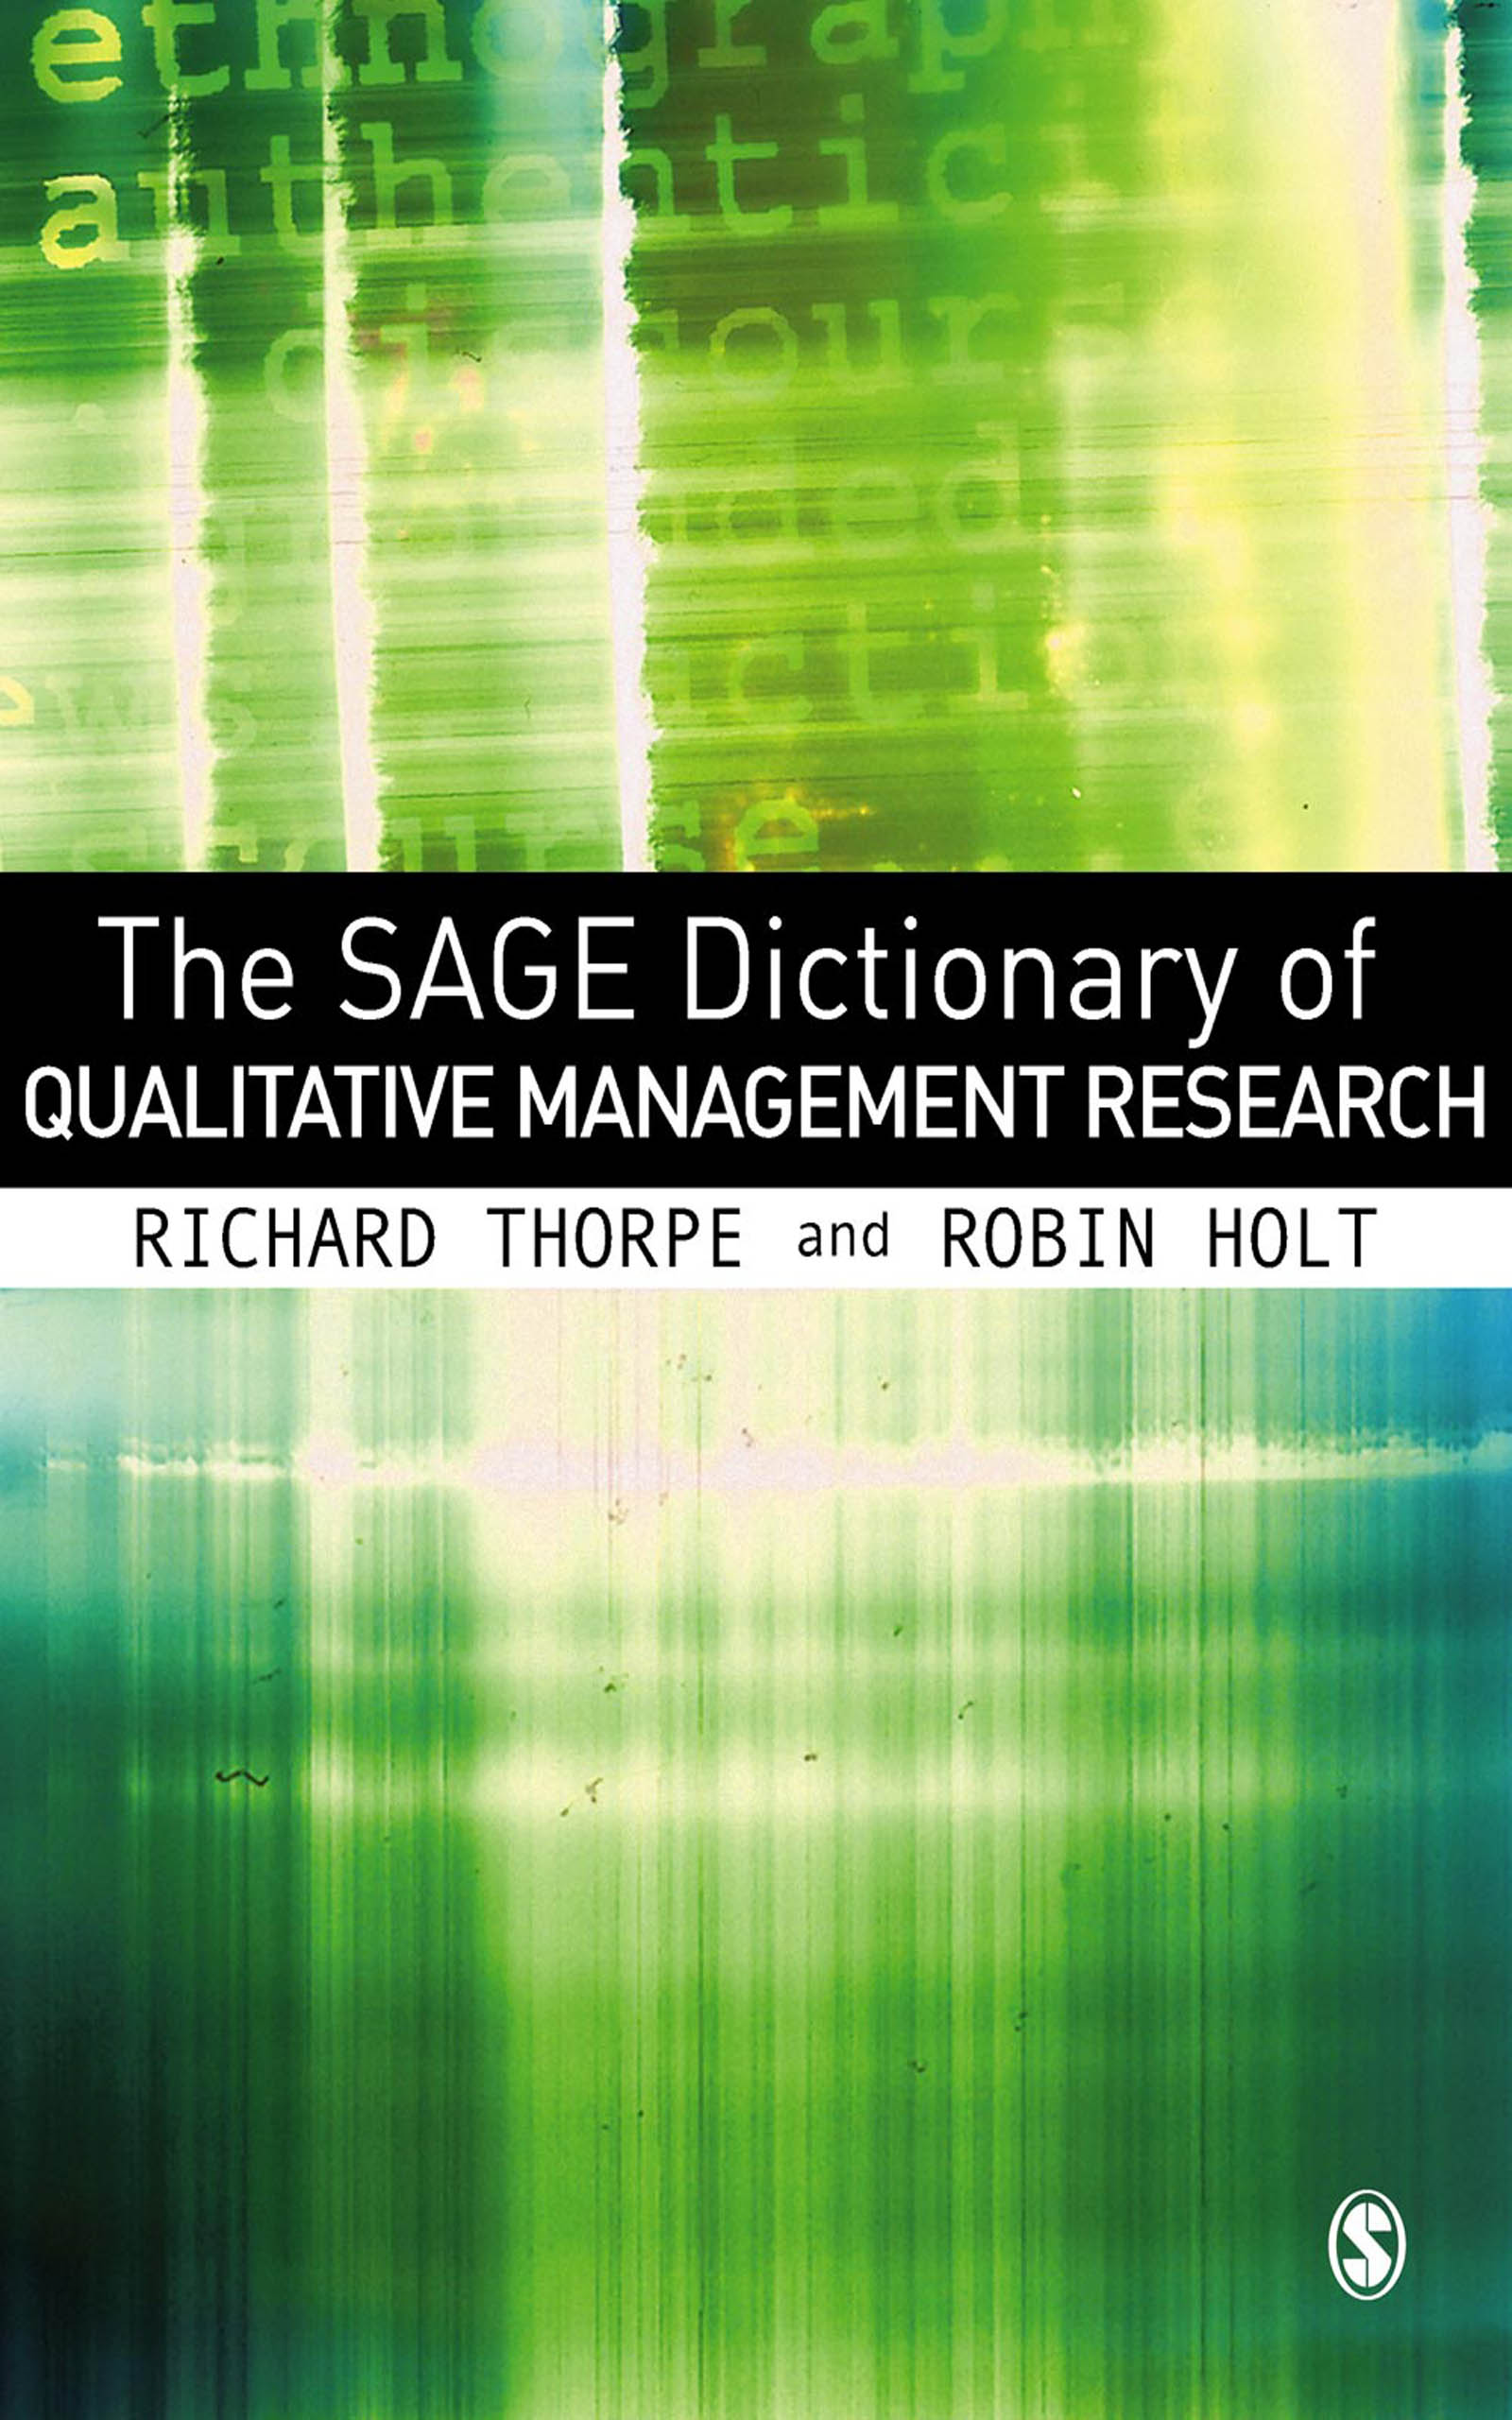 Download Ebook The SAGE Dictionary of Qualitative Management Research by Richard Thorpe Pdf